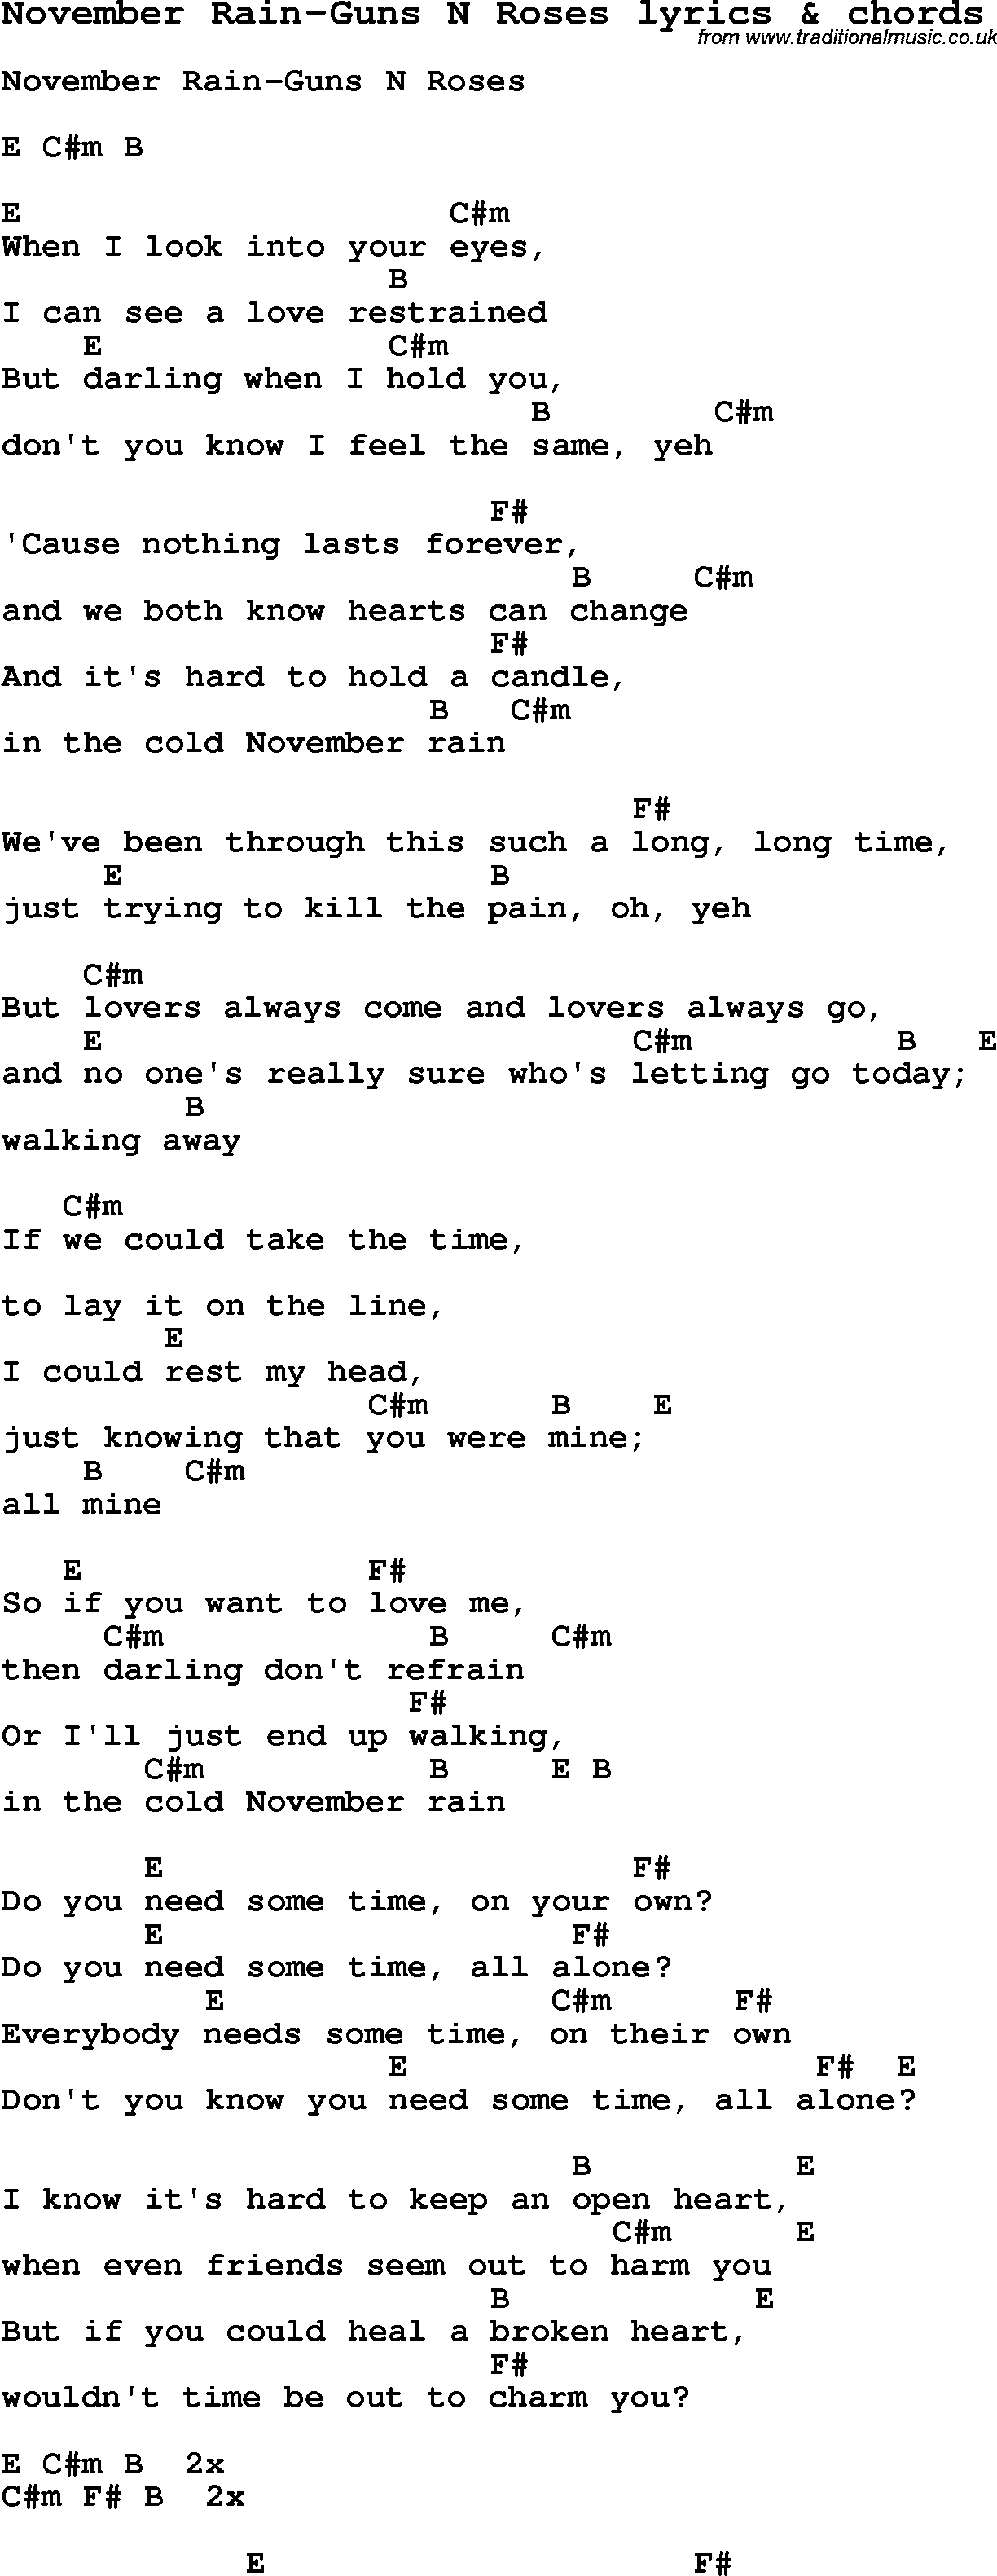 Love song lyrics for november rain guns n roses with chords for love song lyrics for november rain guns n roses with chords for ukulele hexwebz Images